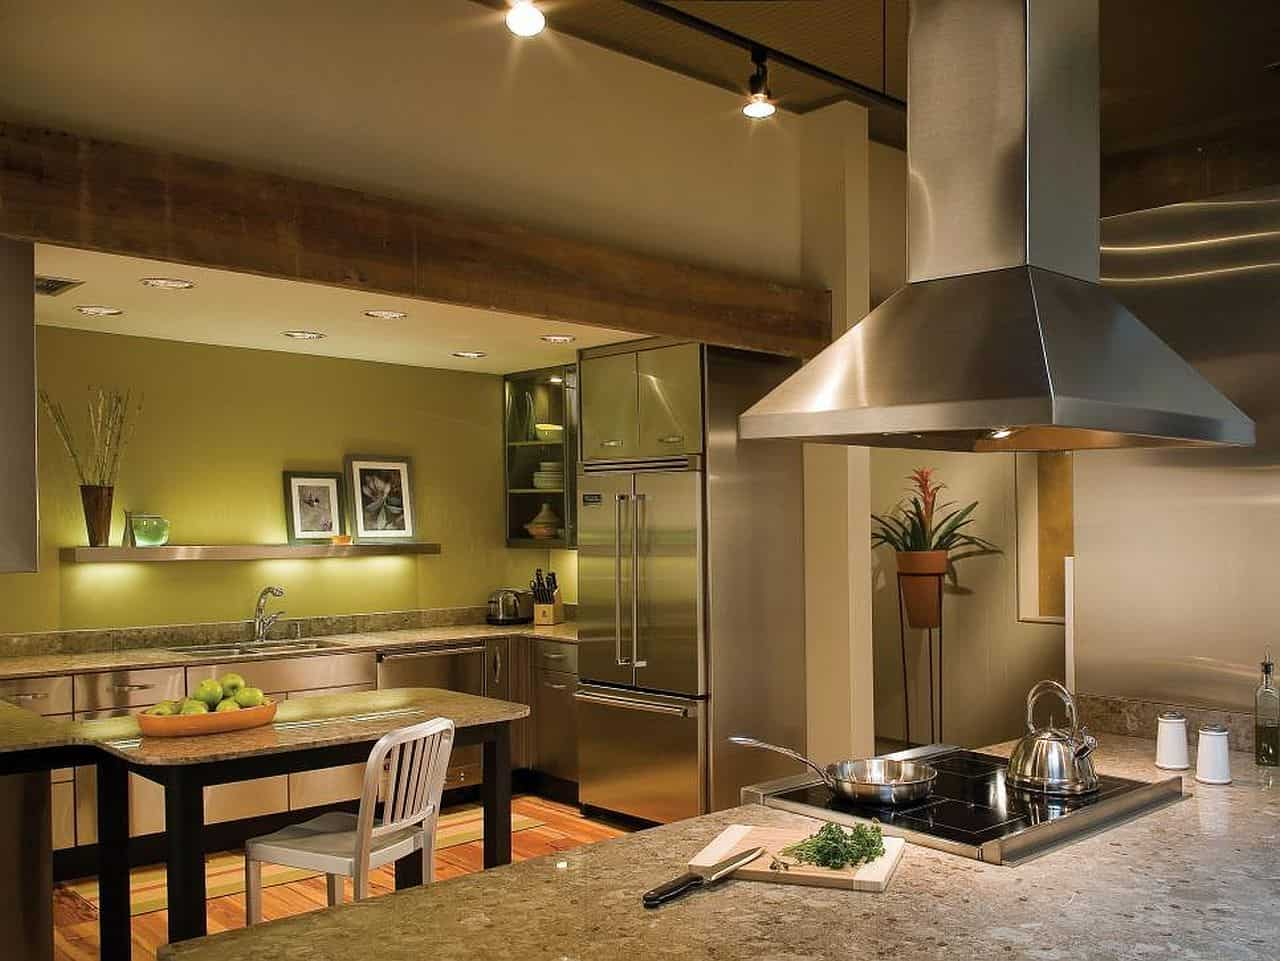 Apple Green with Natural wood ceiling planks